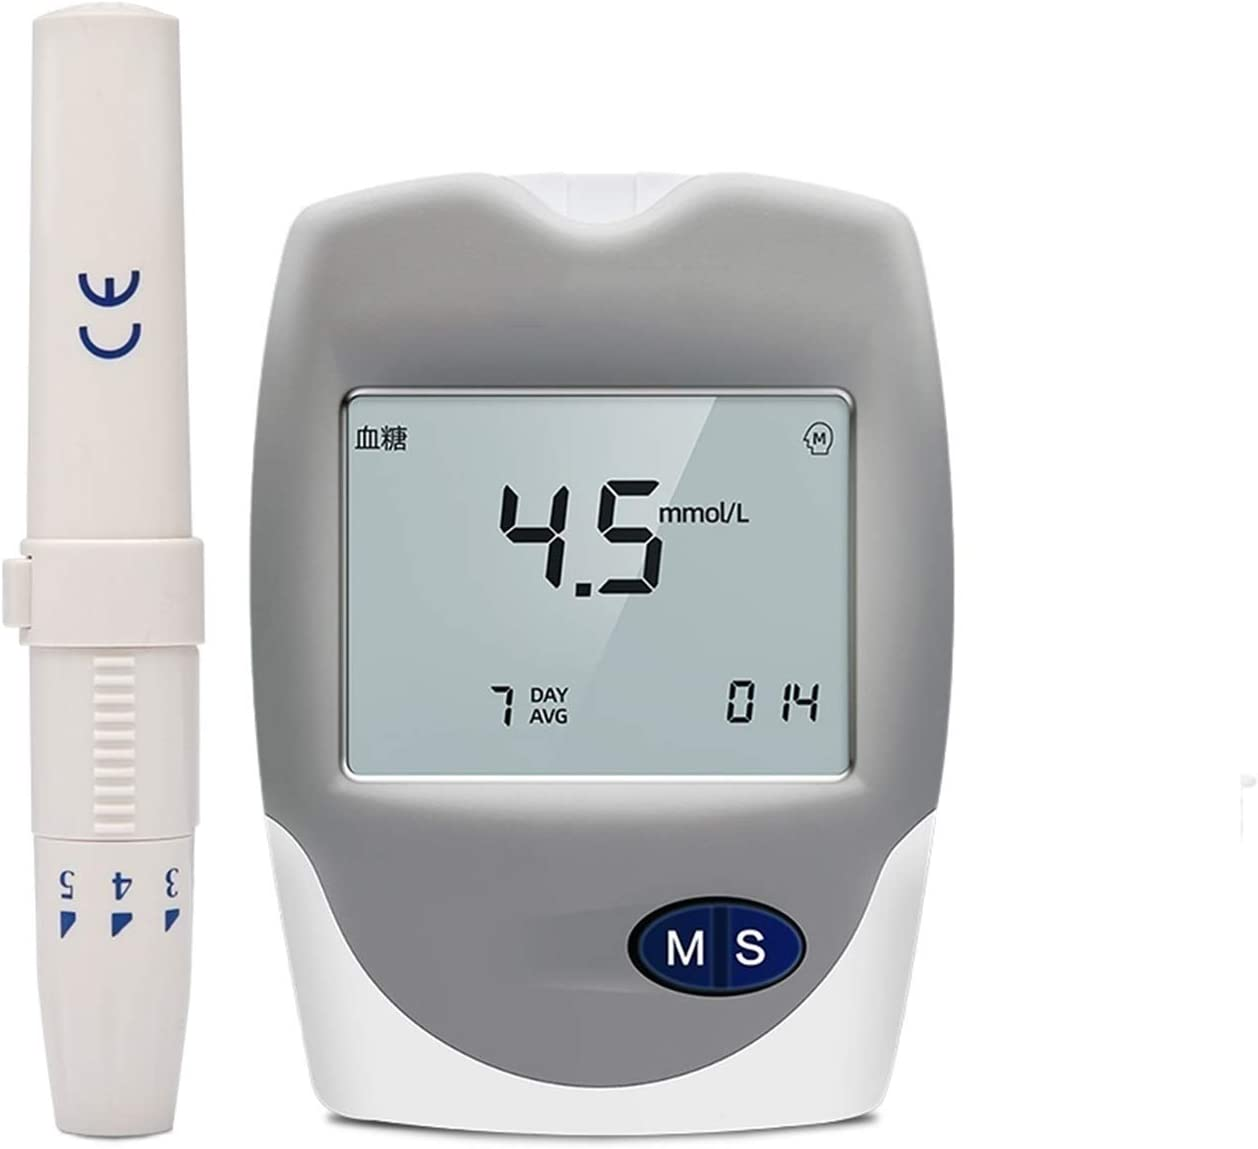 HTTDD 3 in 1 Bloo Glucose Blood Max 57% Max 88% OFF OFF Meter